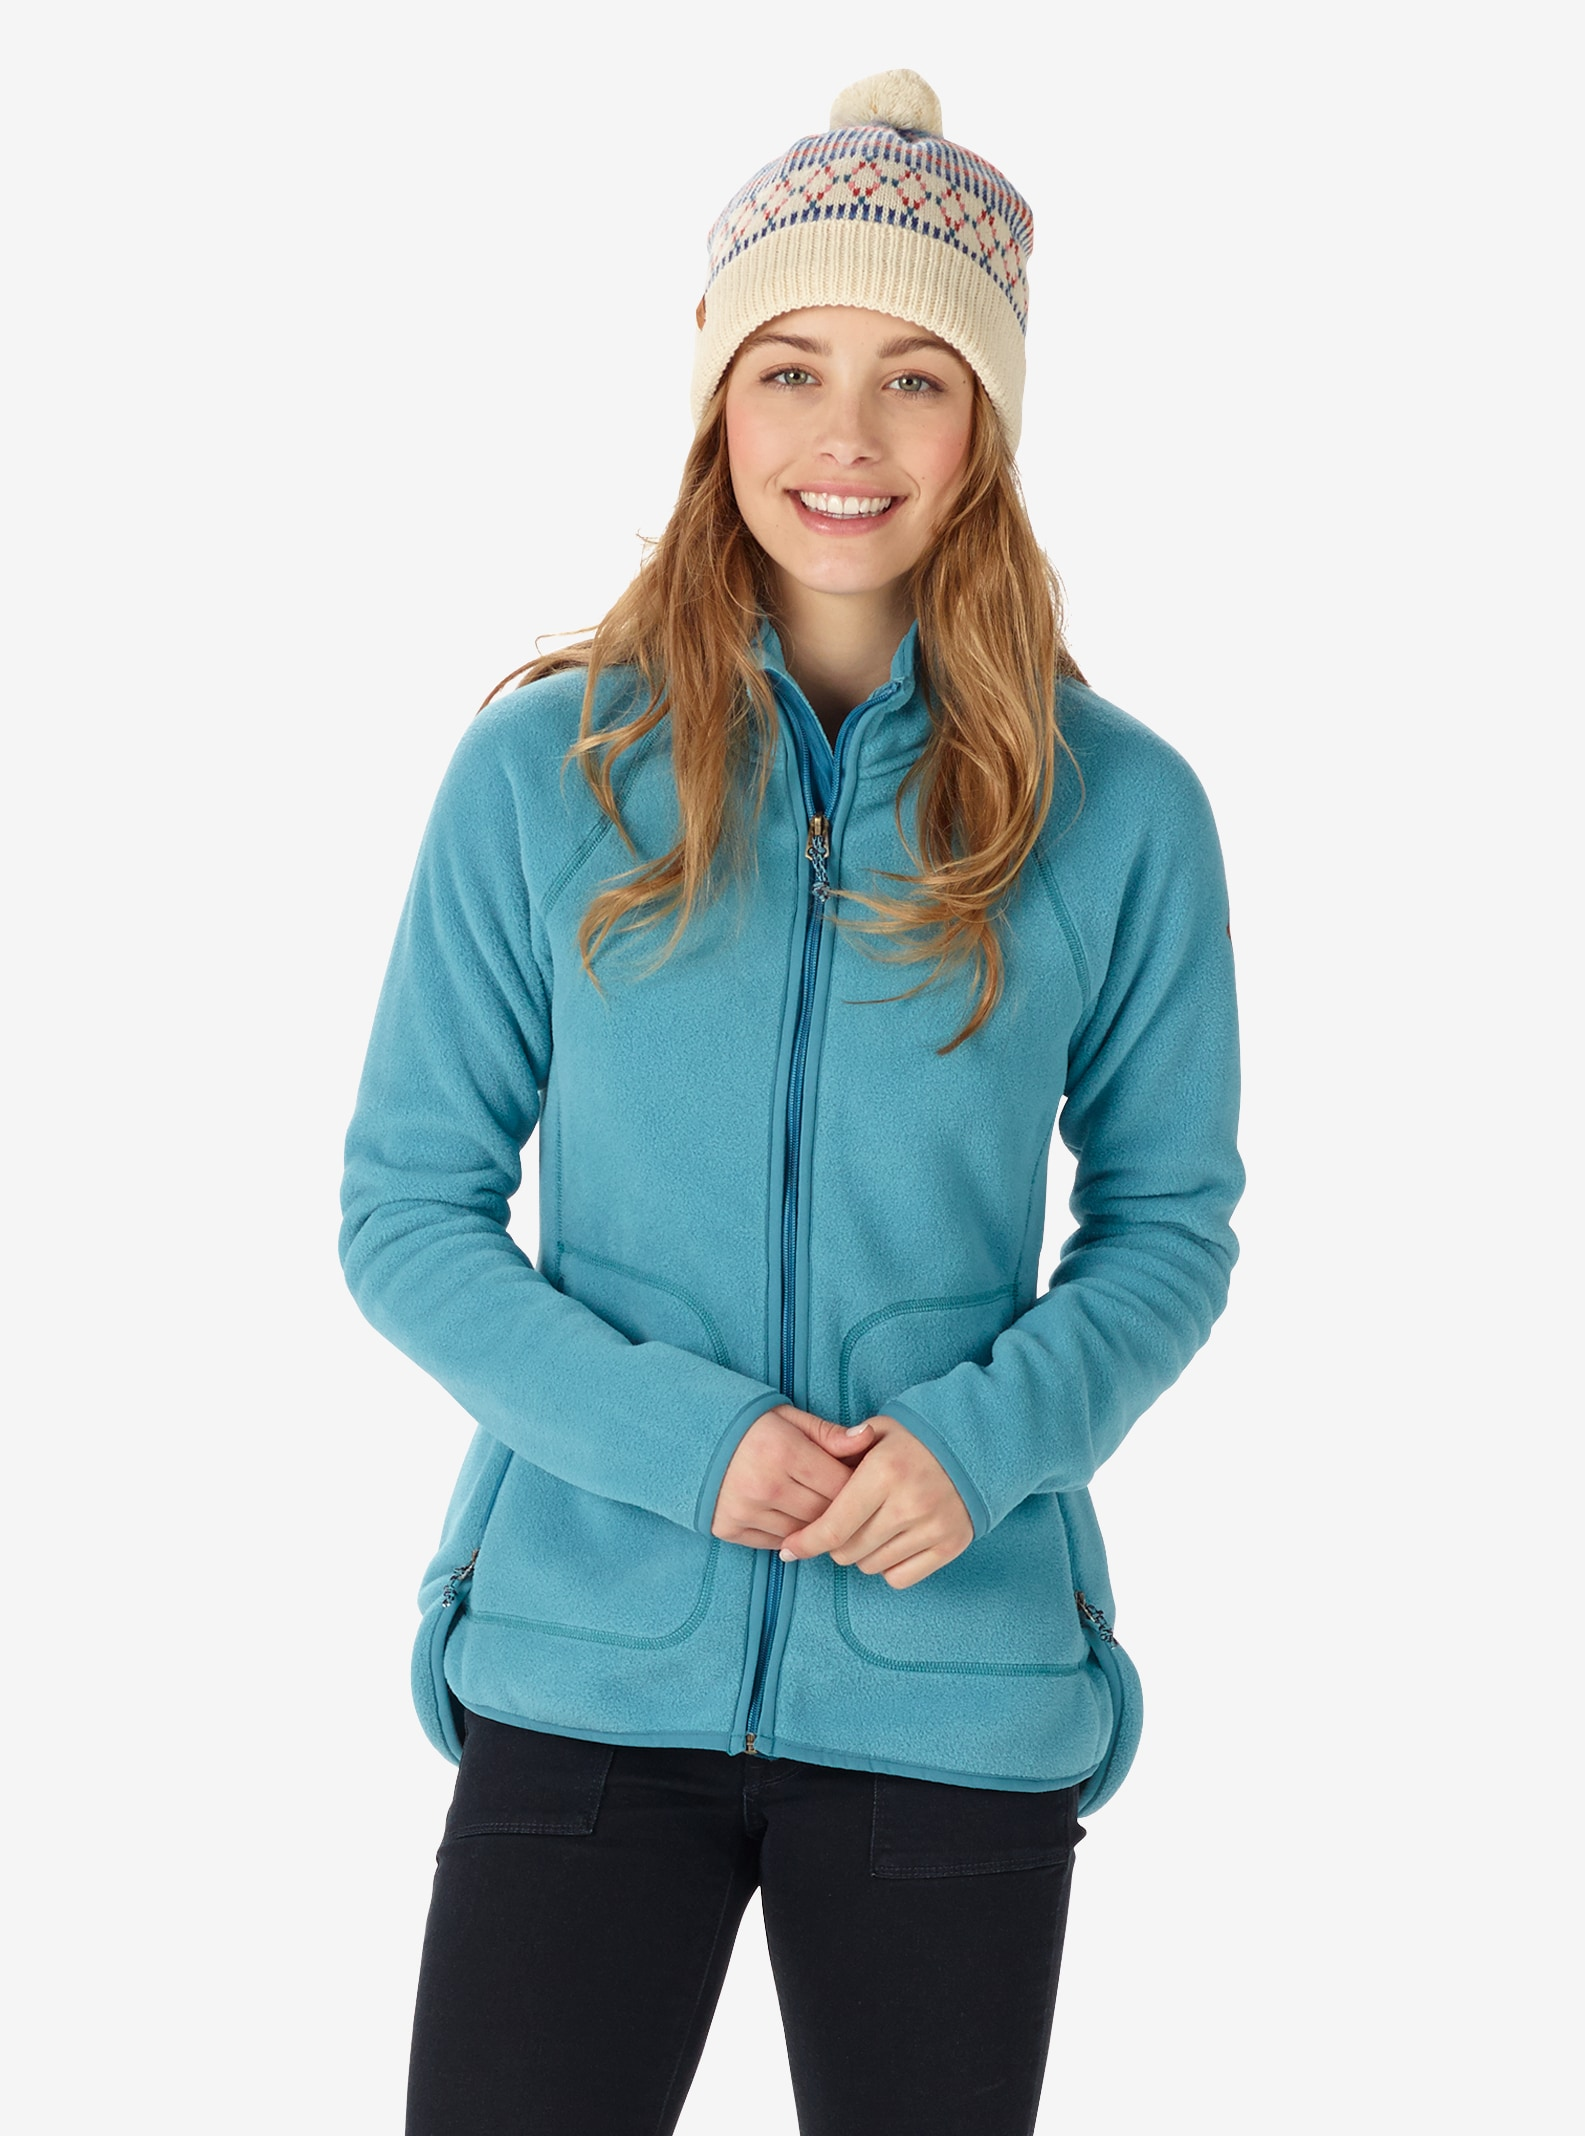 Women's Burton Lira Full-Zip Fleece shown in Larkspur